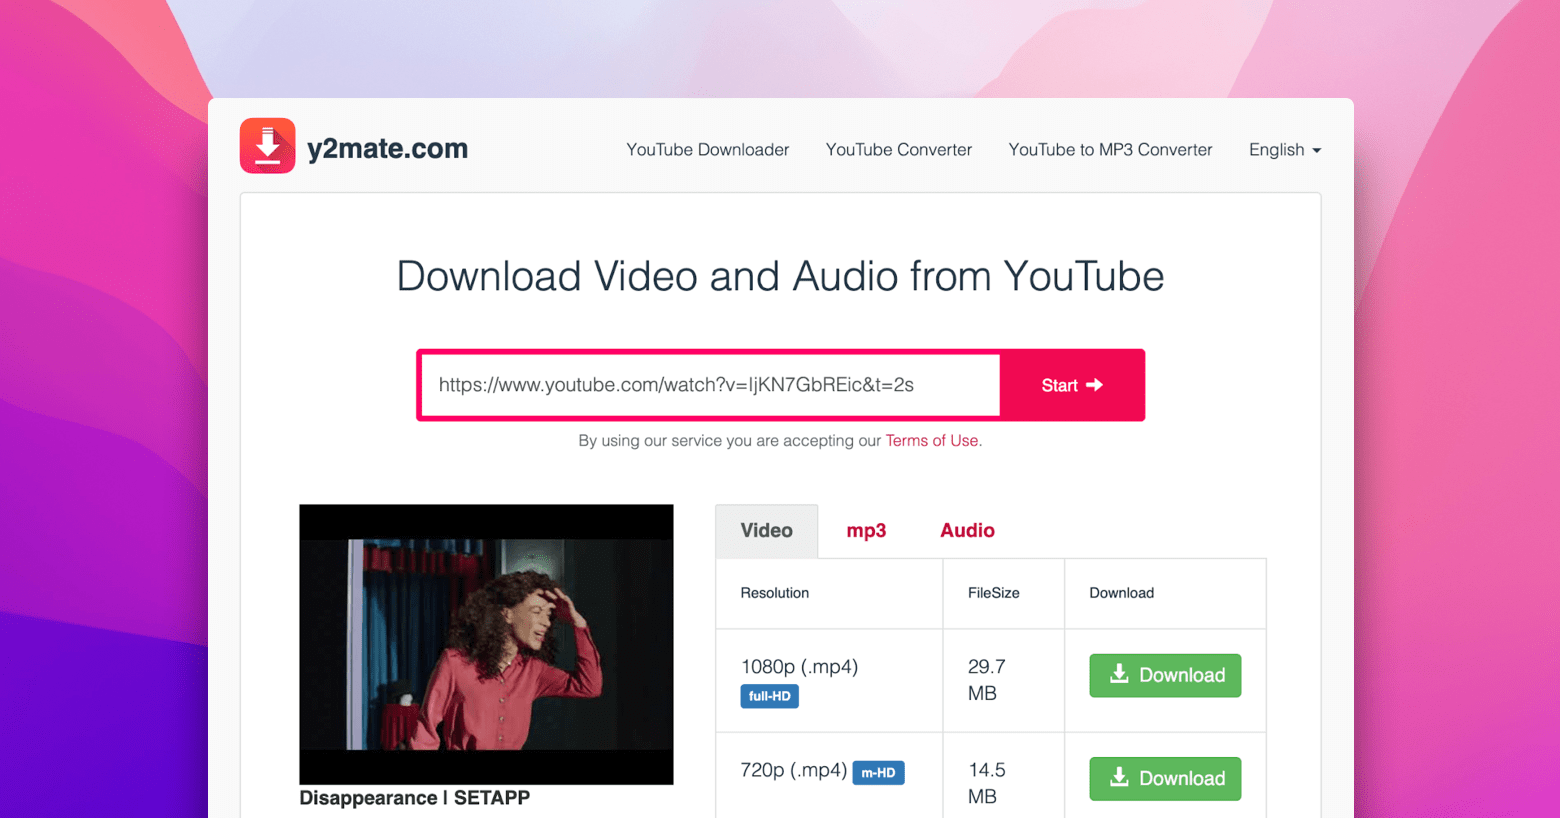 y2mate free Youtube downloader